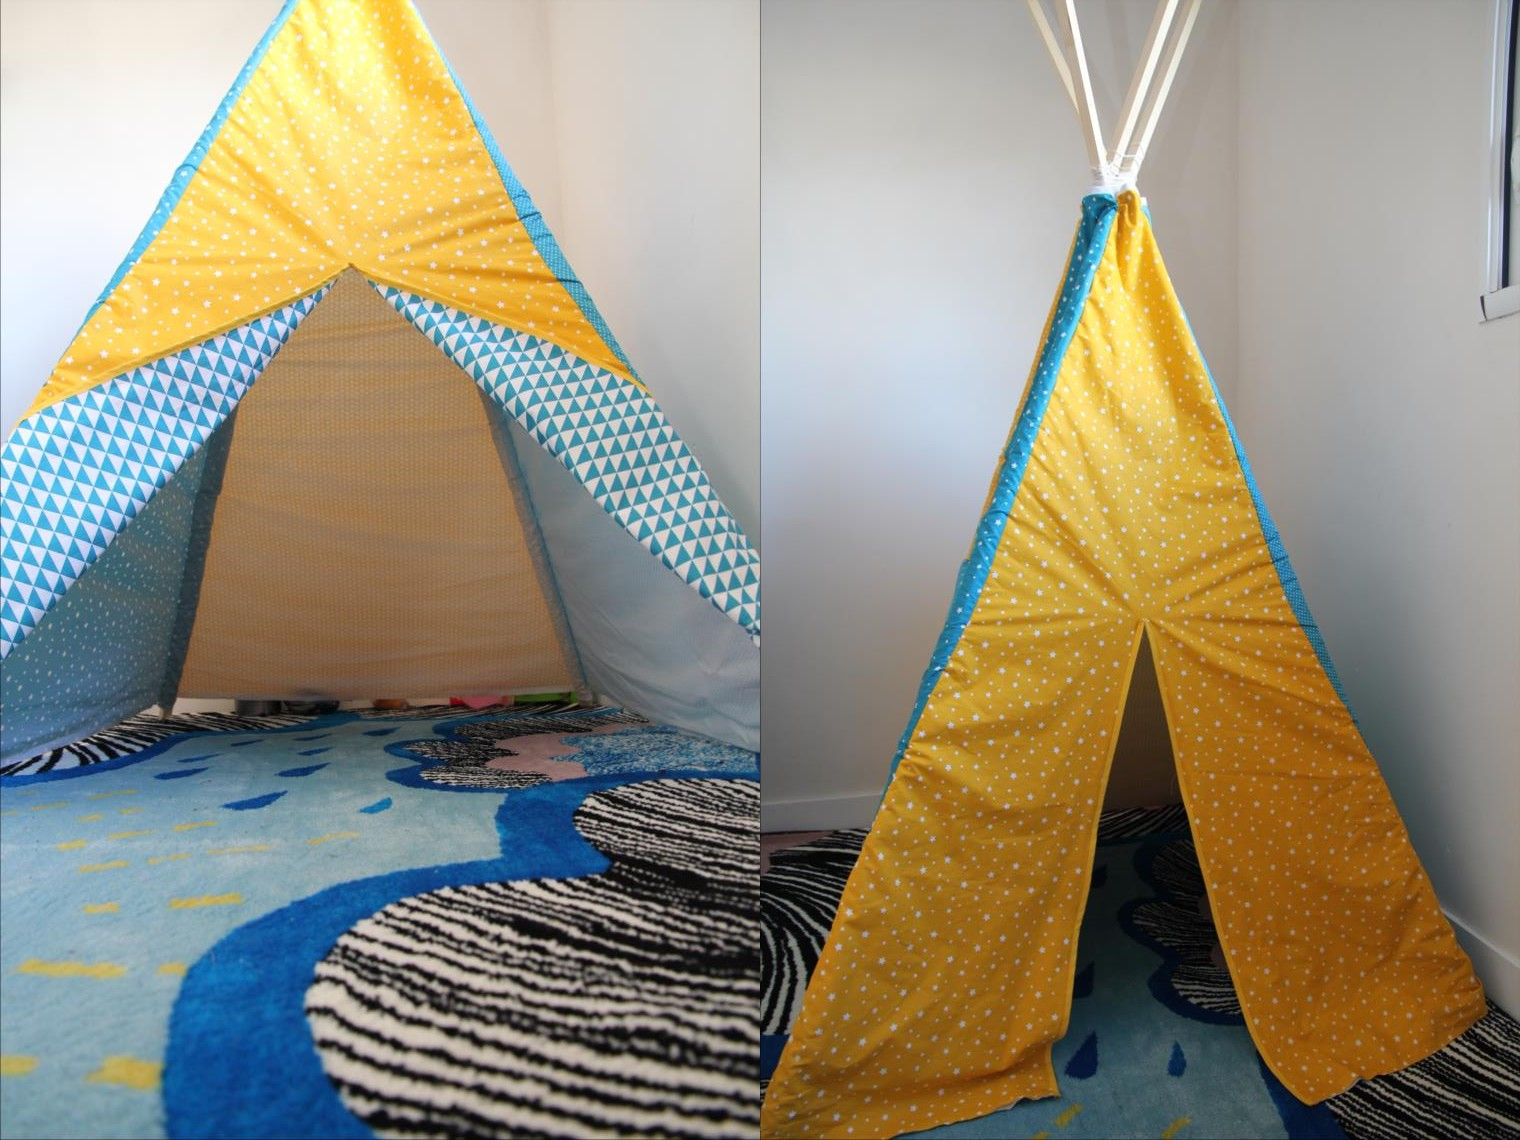 laisse luciefer les petits secrets couture tuto tipi pour enfants. Black Bedroom Furniture Sets. Home Design Ideas